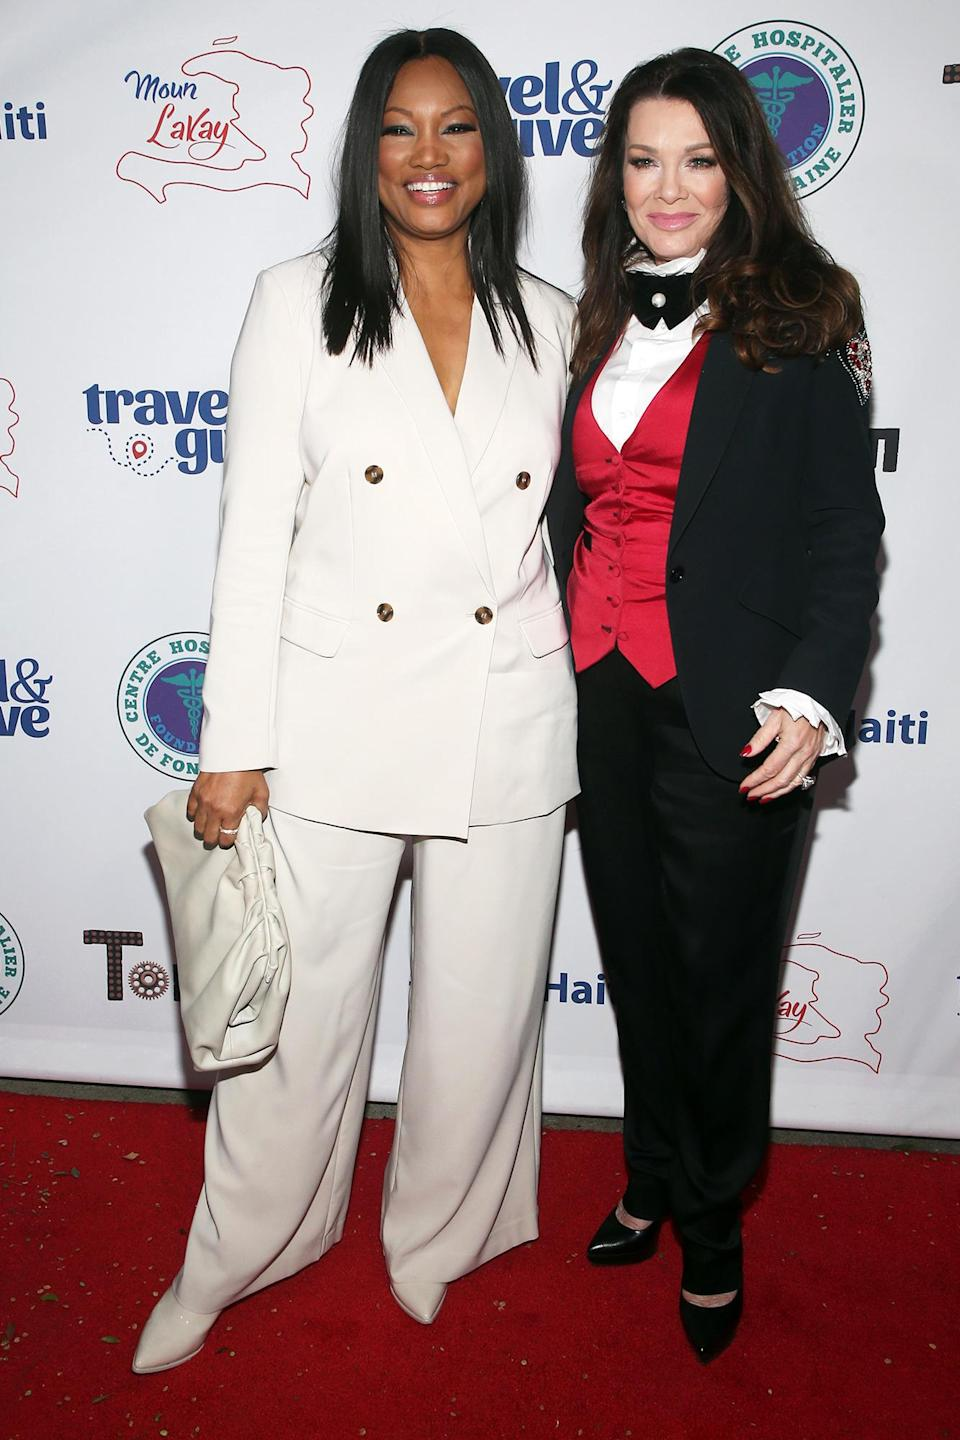 <p><em>Real Housewives</em> star Garcelle Beauvais and <em>Housewives </em>alum Lisa Vanderpump pose together at Travel & Give's 4th Annual Travel with a Purpose fundraiser at Tom Tom in West Hollywood on Oct. 11.</p>